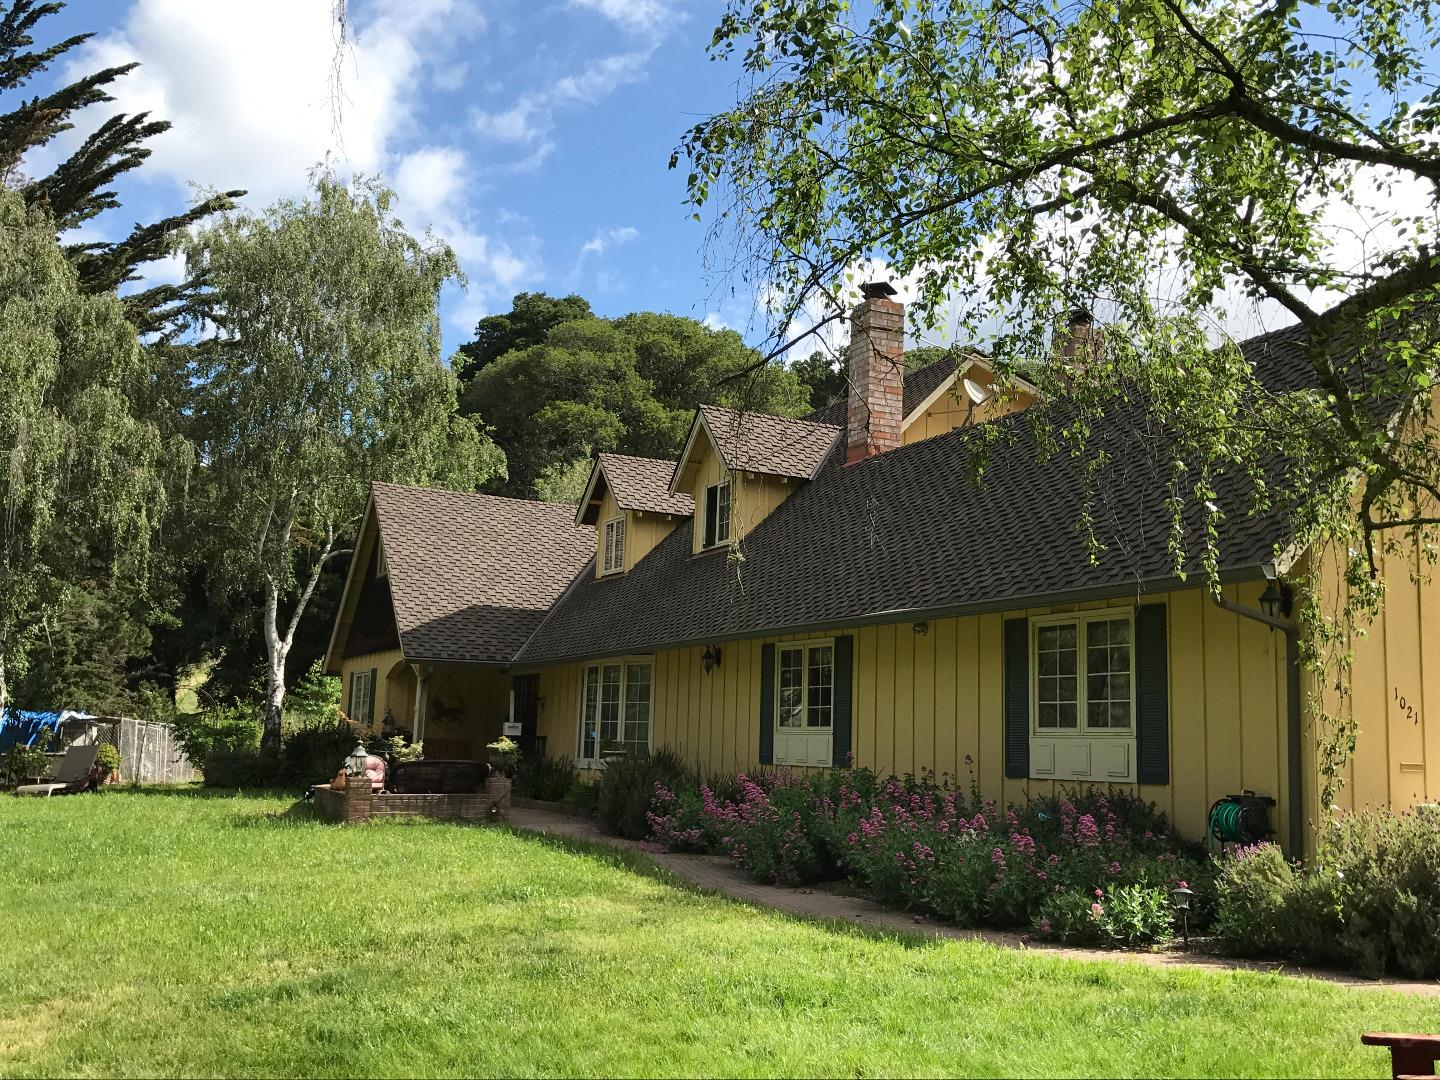 Single Family Home for Sale at 1021 Cannon Road Aromas, California 95004 United States